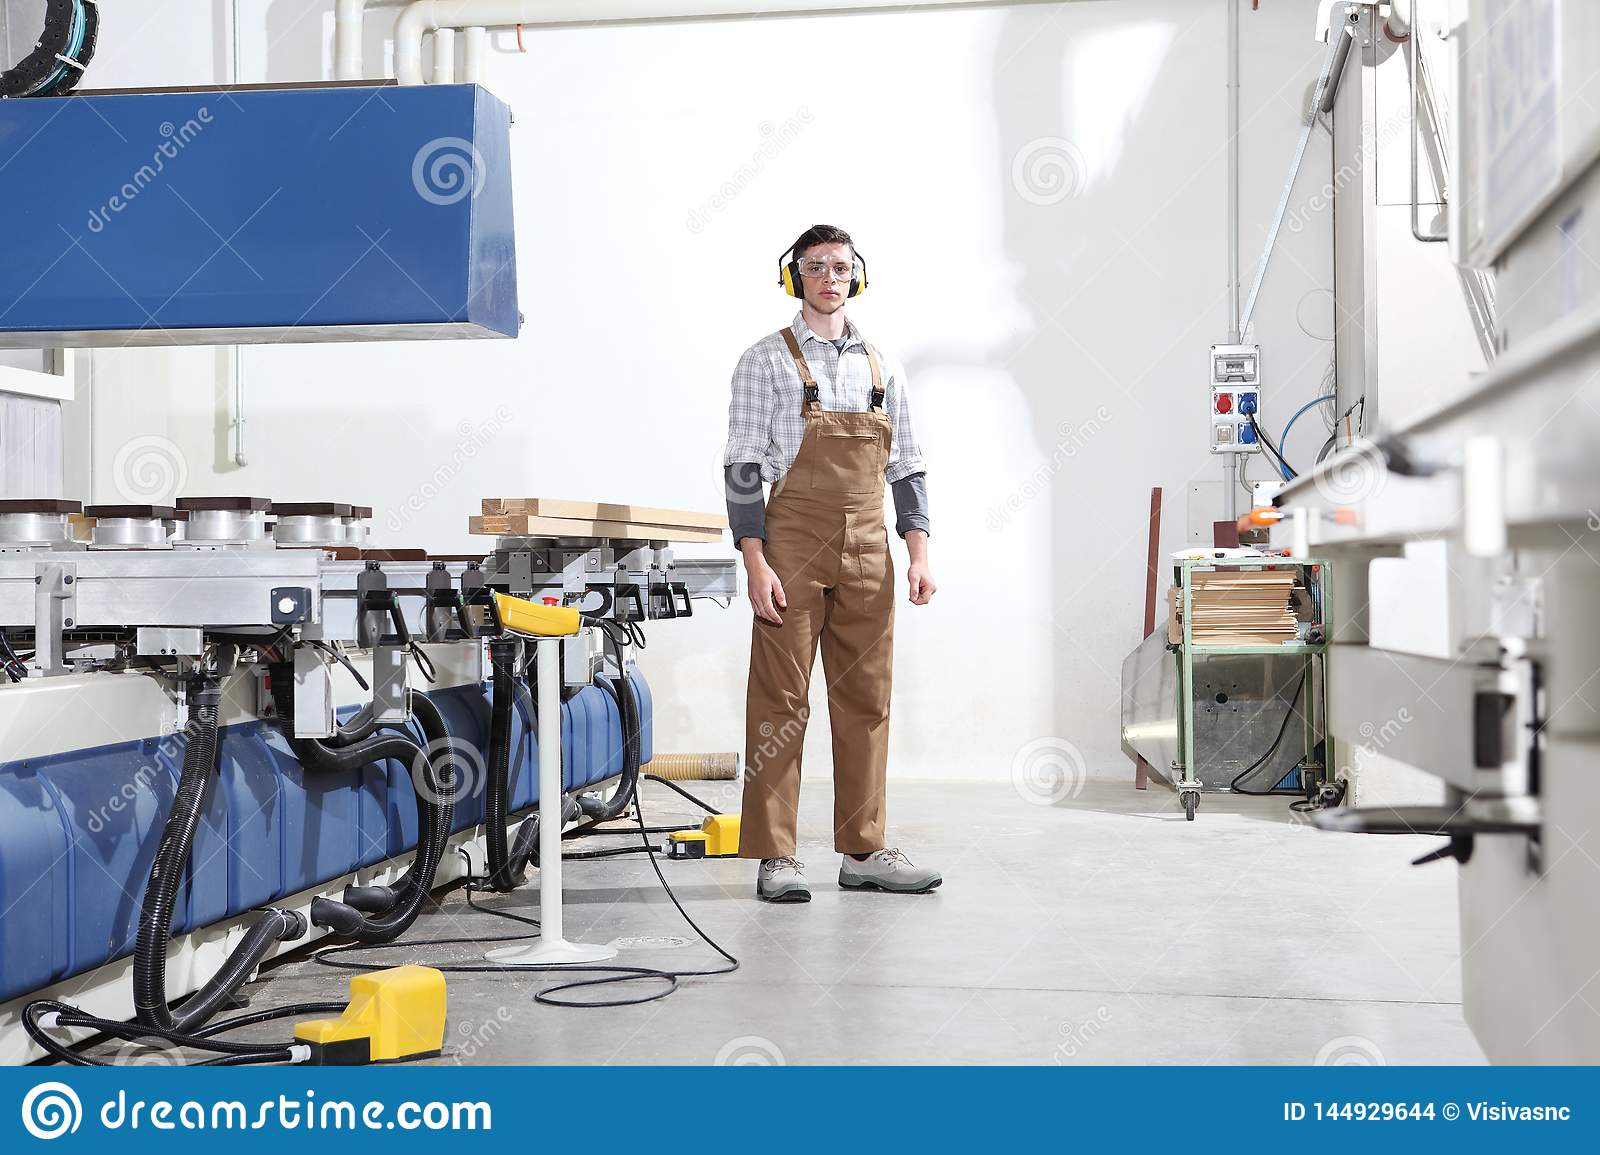 Carpenter man works with wooden planks in the joinery, with computer numerical control center, cnc machine,  isolated on a white